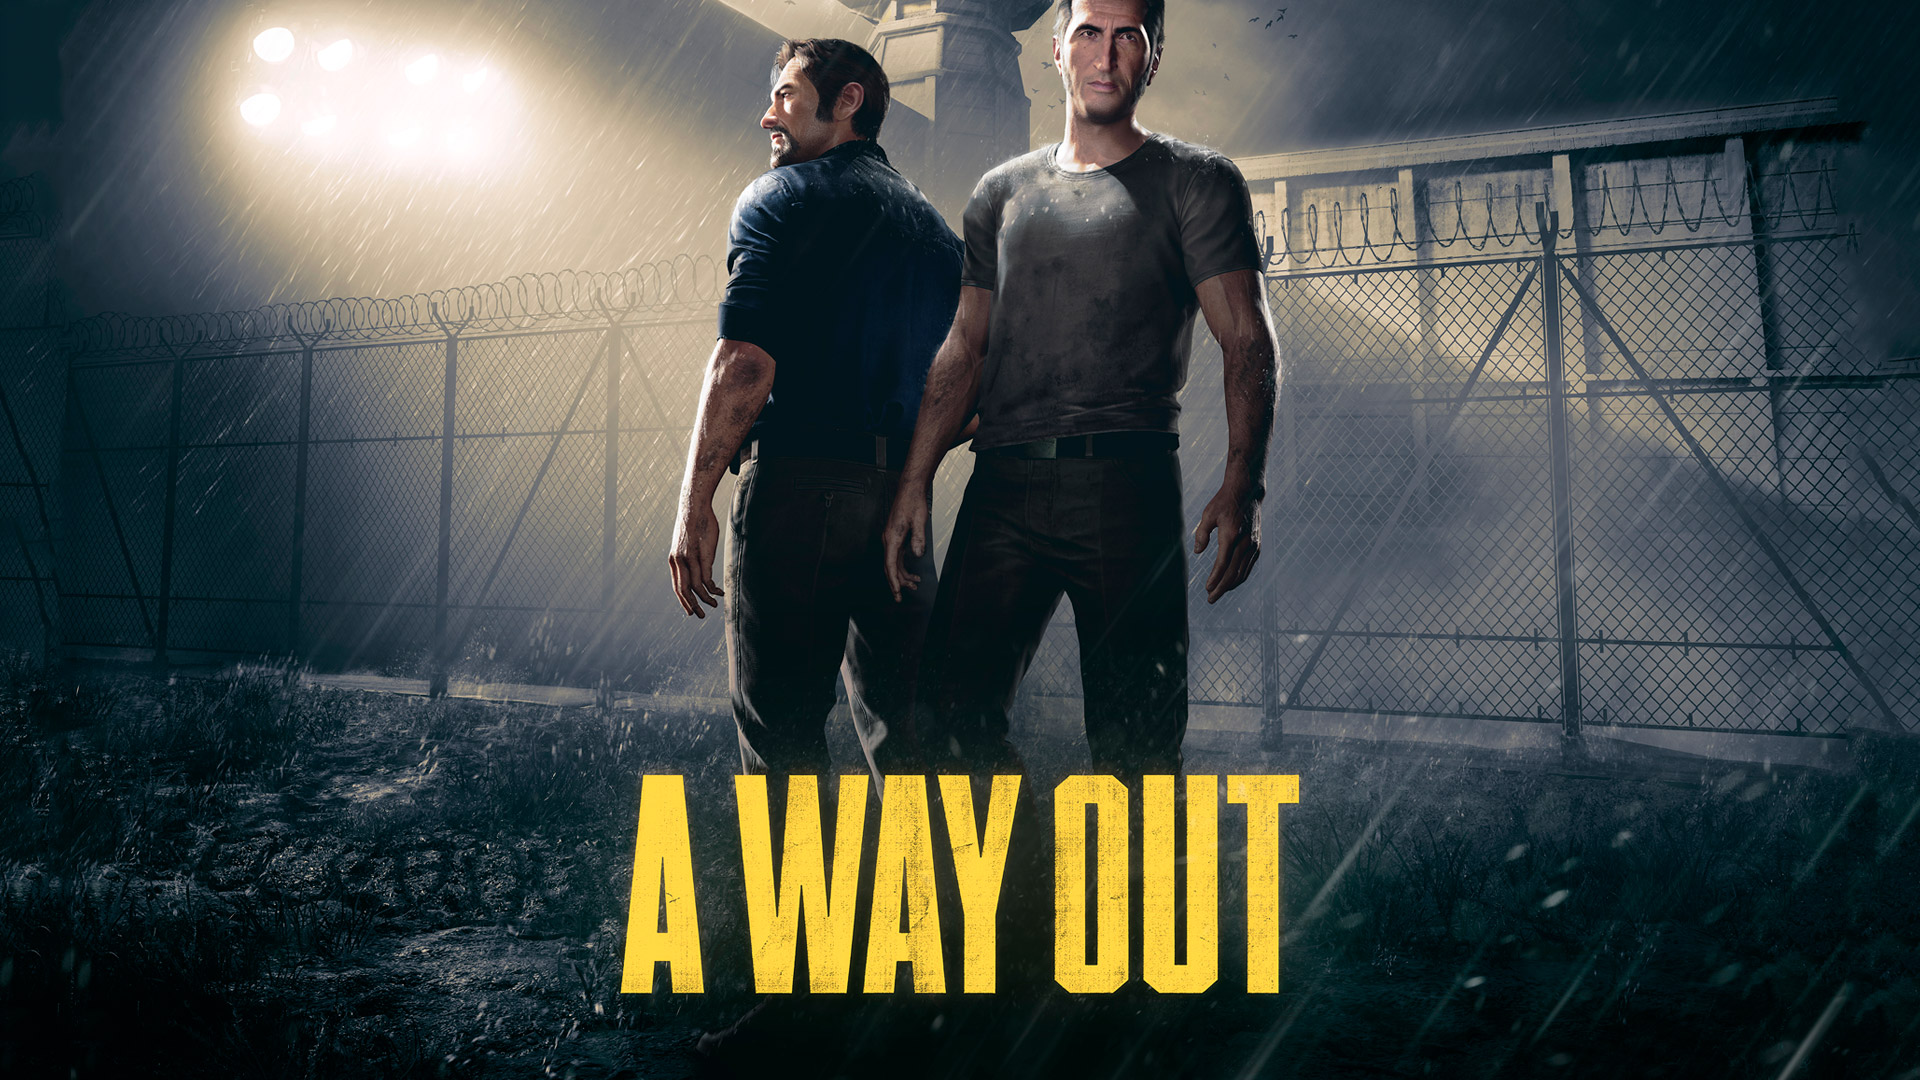 Free A Way Out Wallpaper in 1920x1080